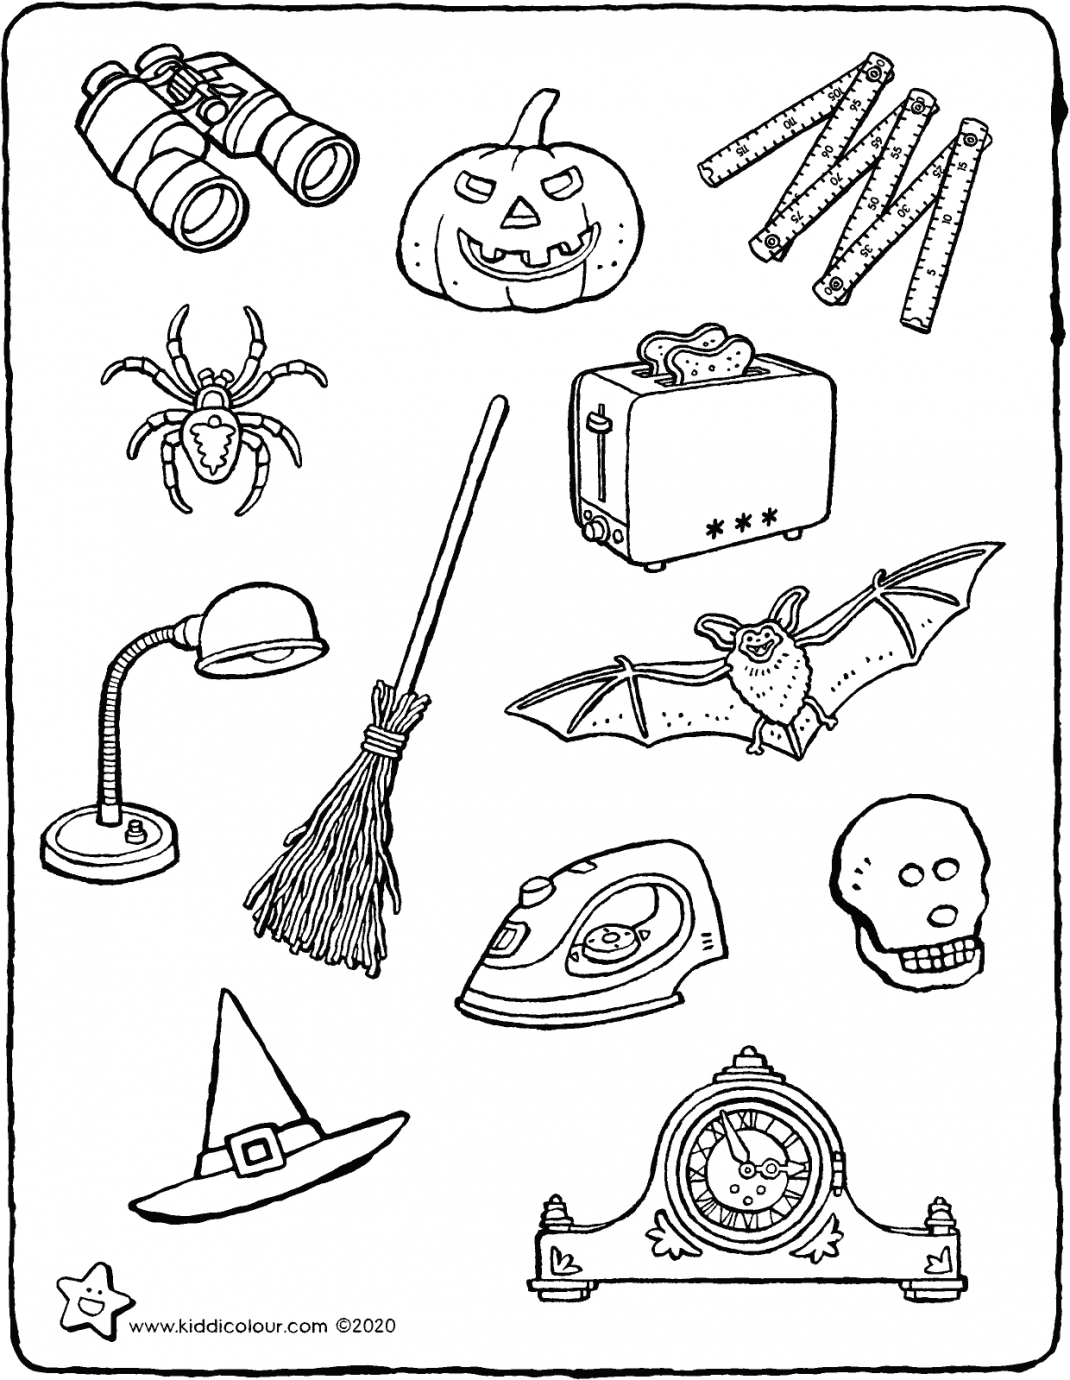 what is linked to Halloween? colouring page drawing picture 01V